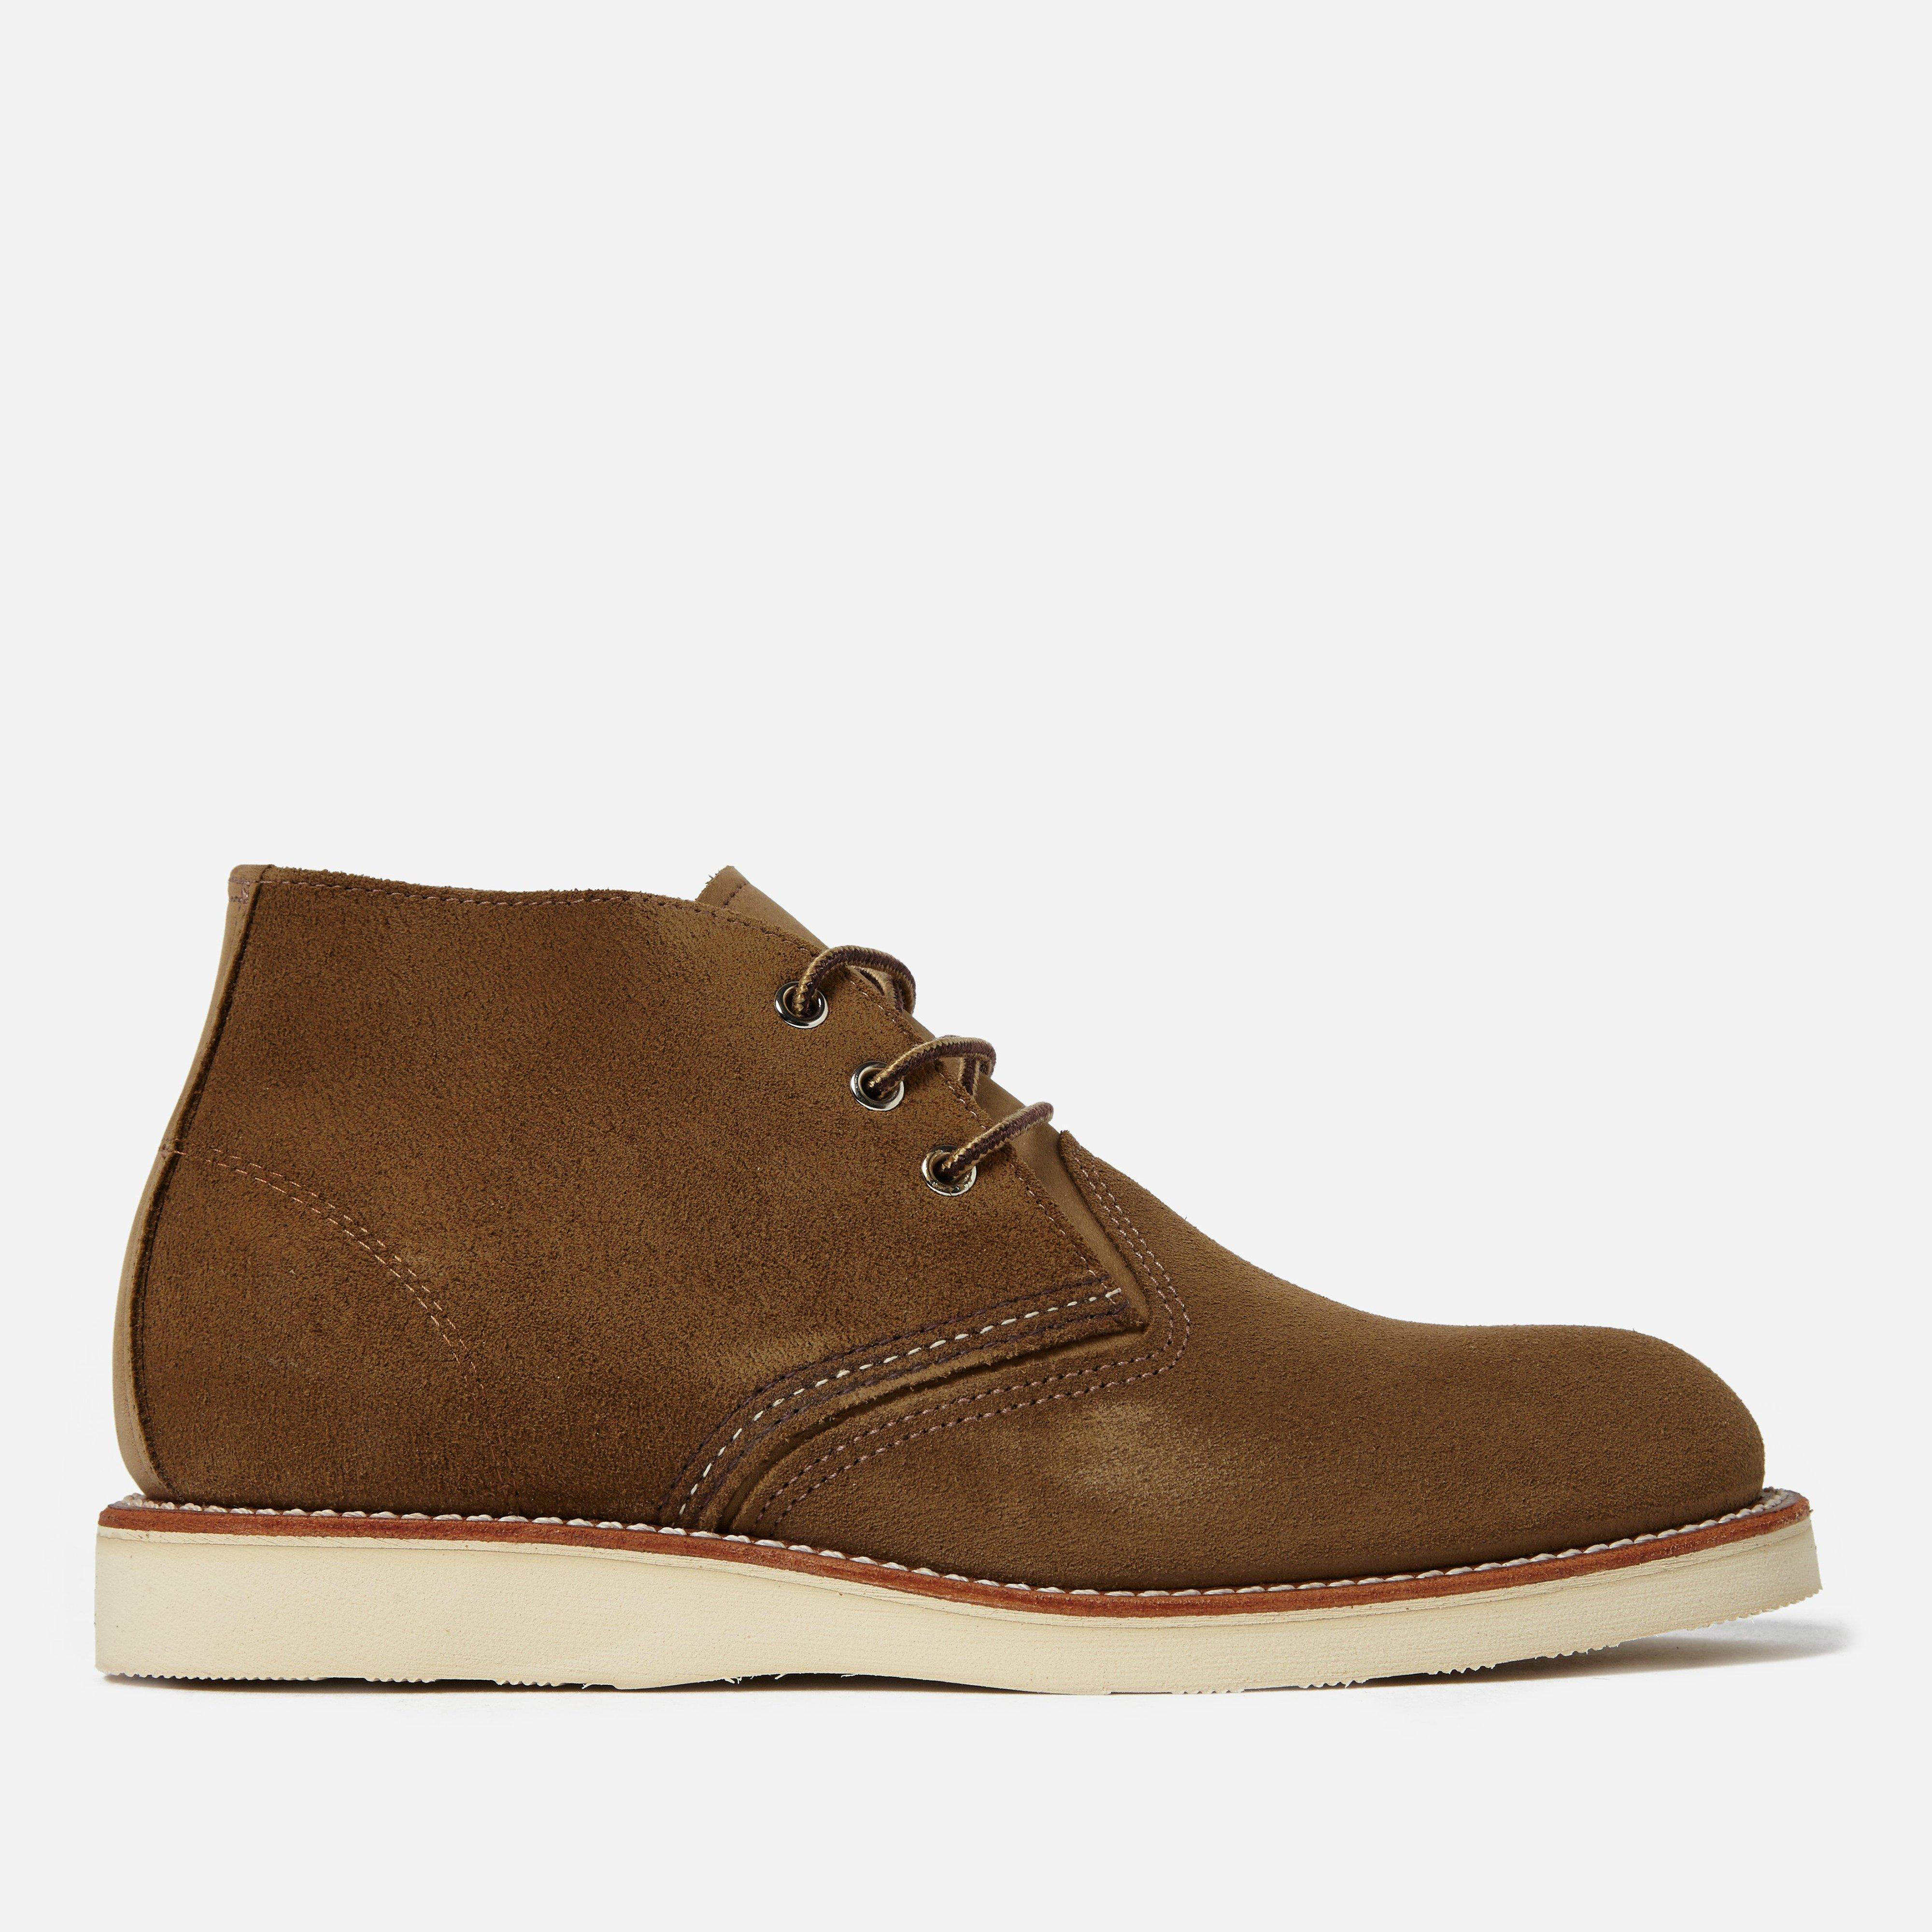 Red Wing  Mens Boots 3149 Chukka Heritage Work Olive Mohave  Green